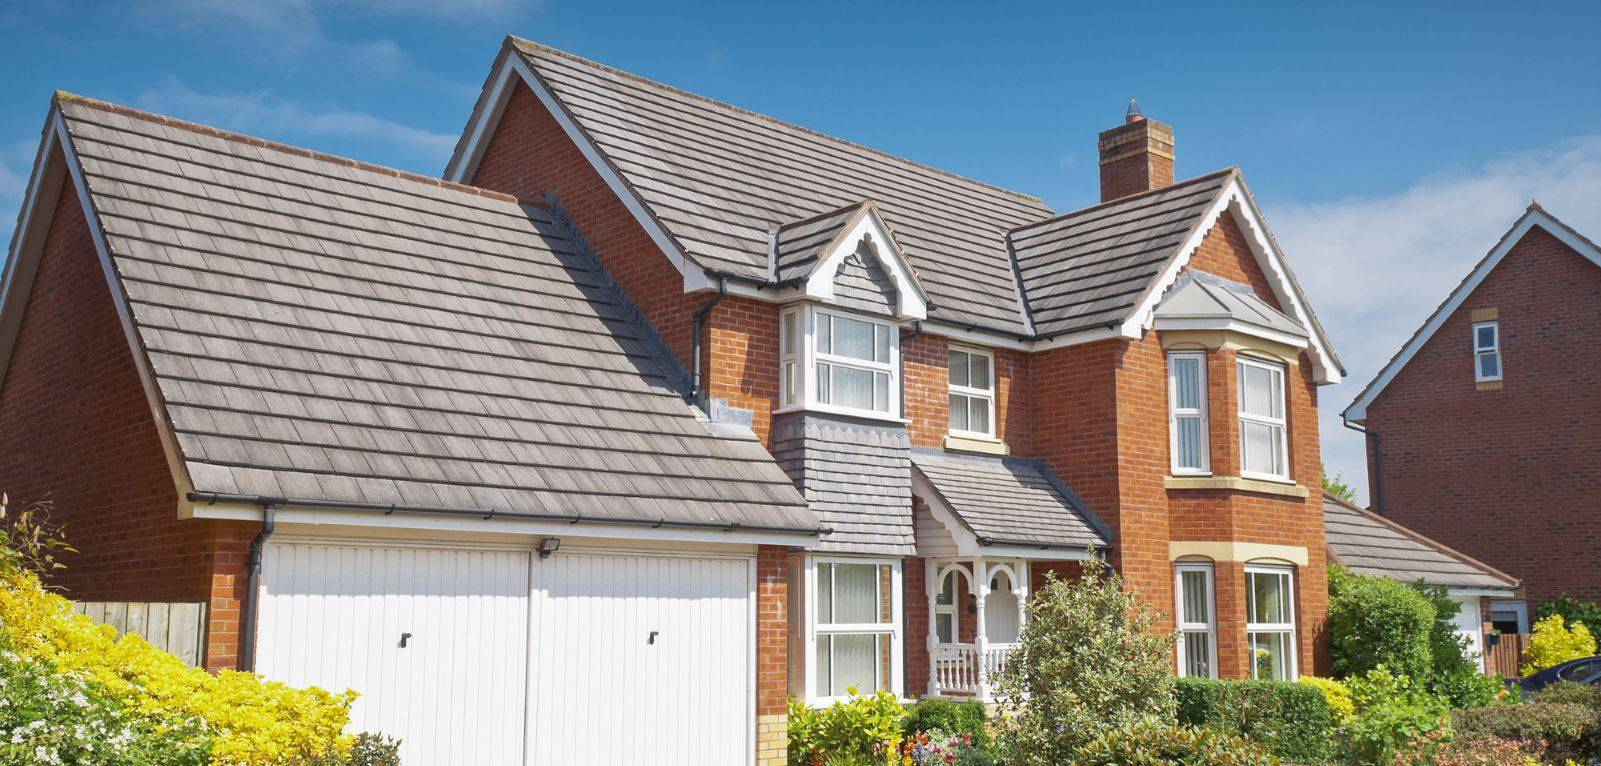 Victorian house with tiles roof